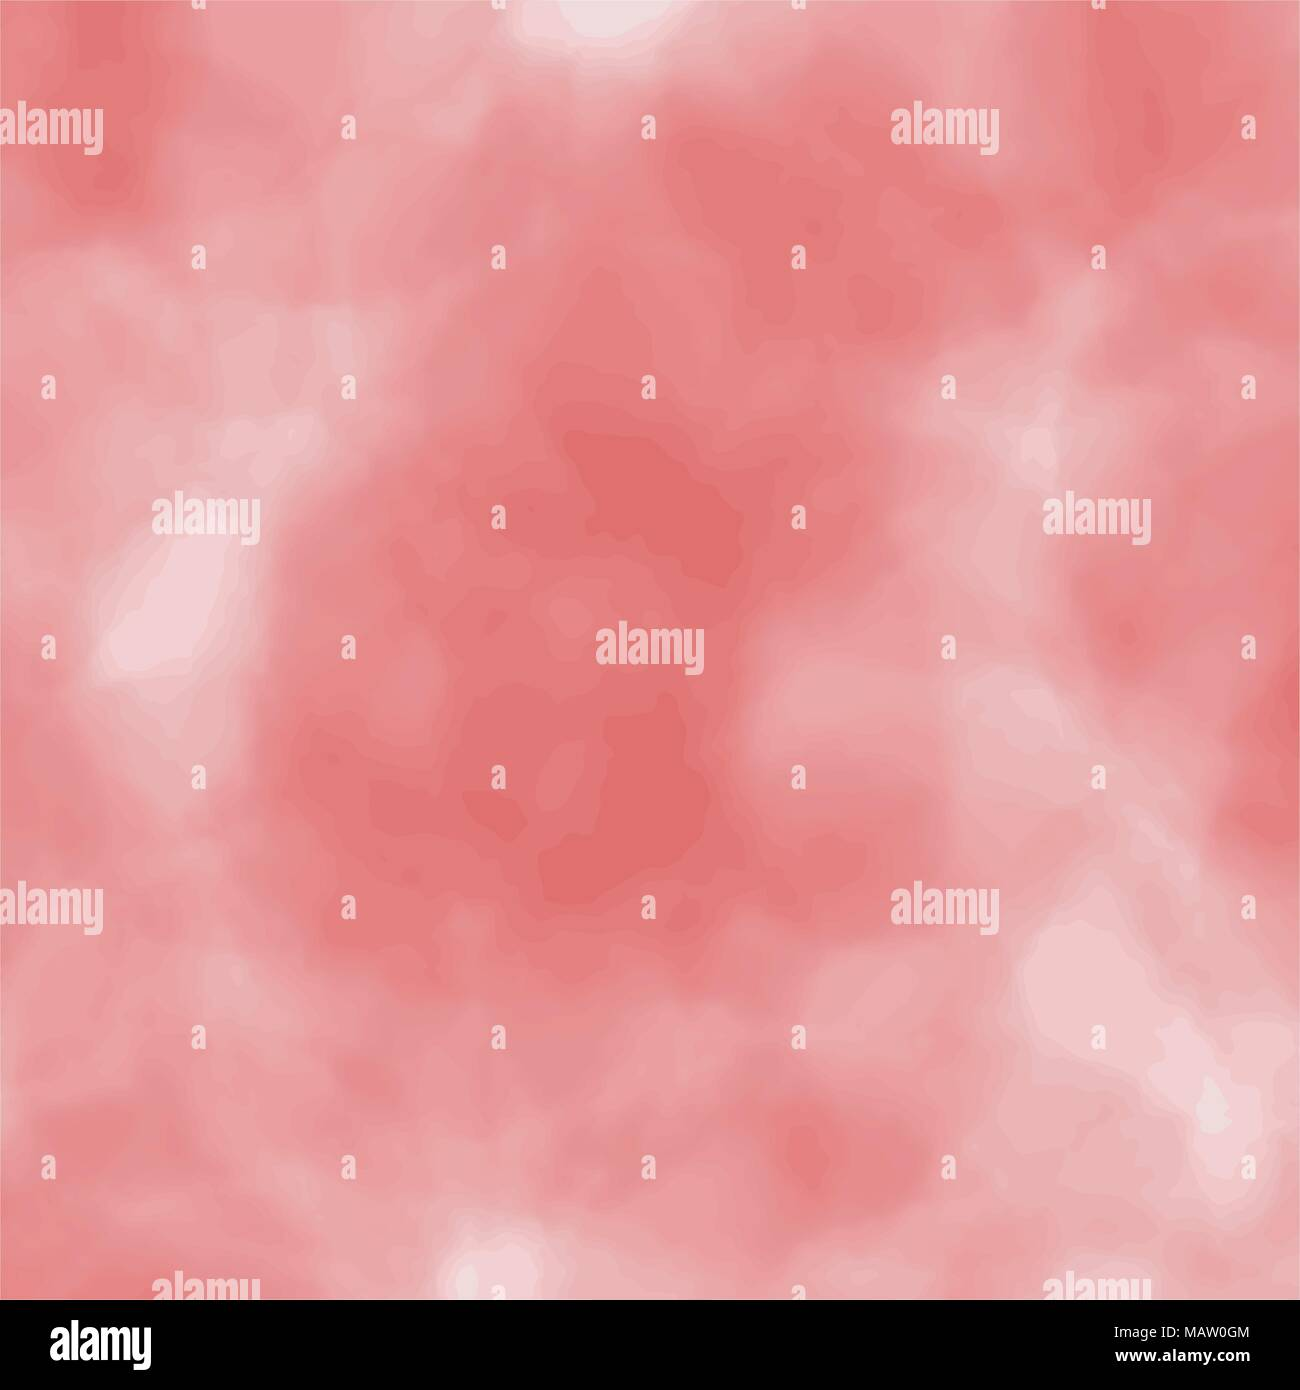 red watercolor blurred background pattern, vector illustration - Stock Vector